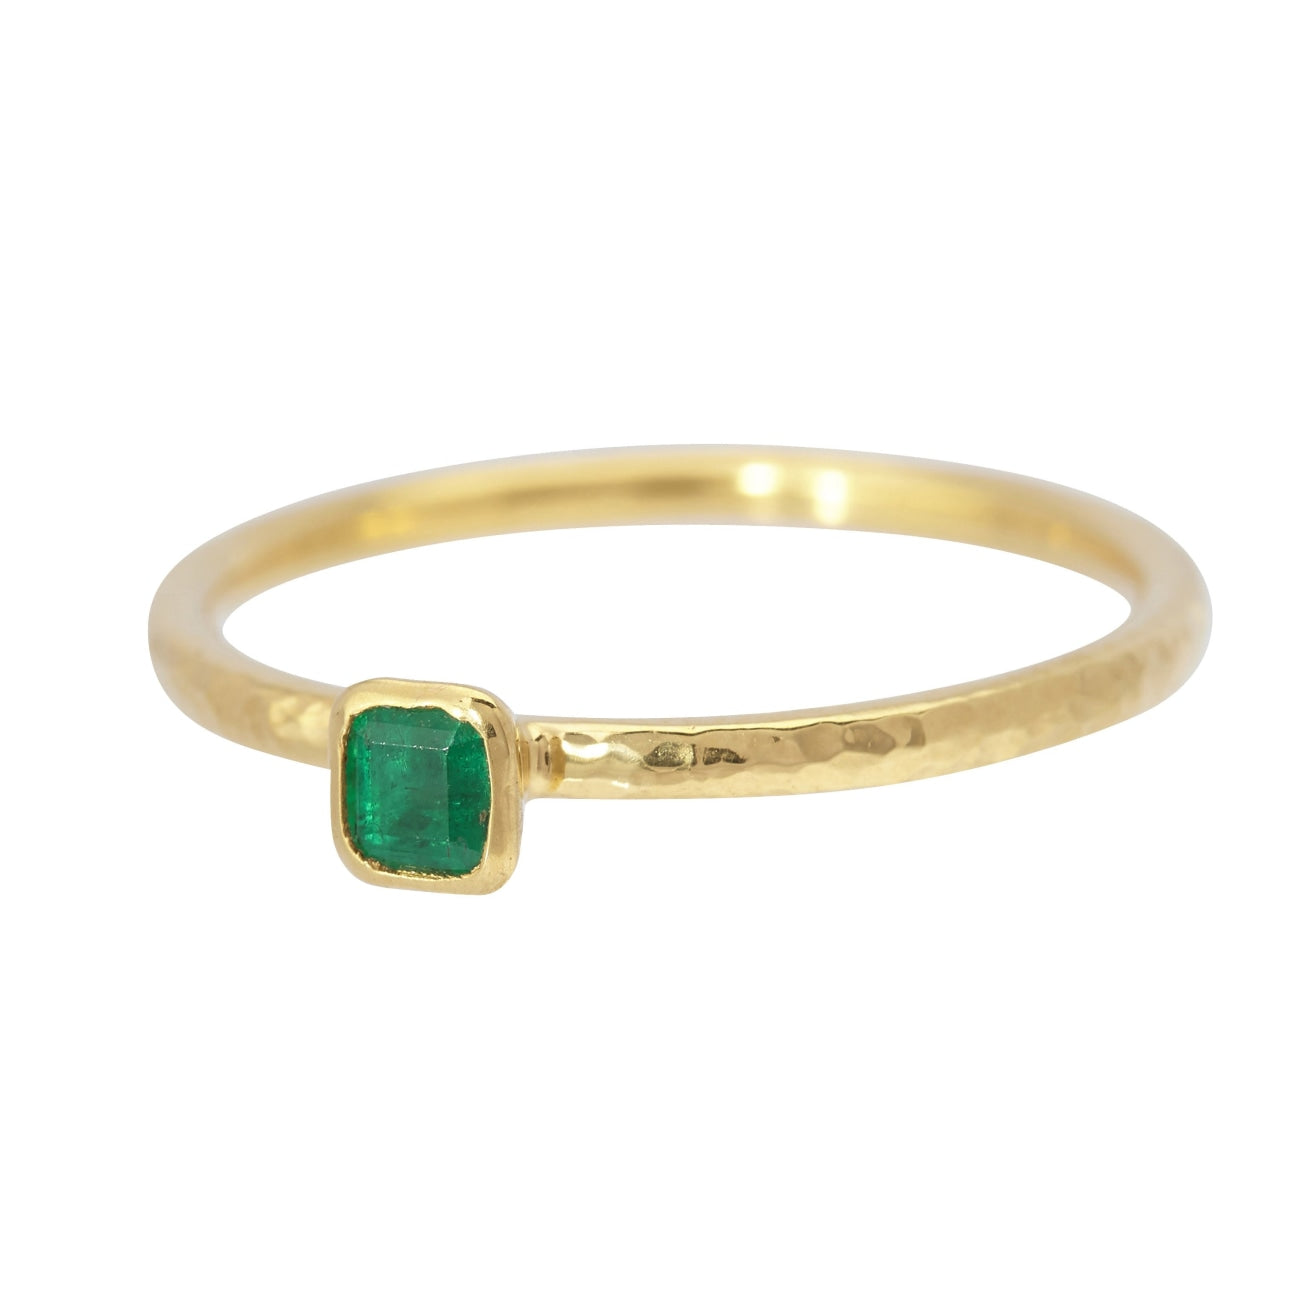 Gurhan Jewelry - Stackable ring with square emerald | Manfredi Jewels